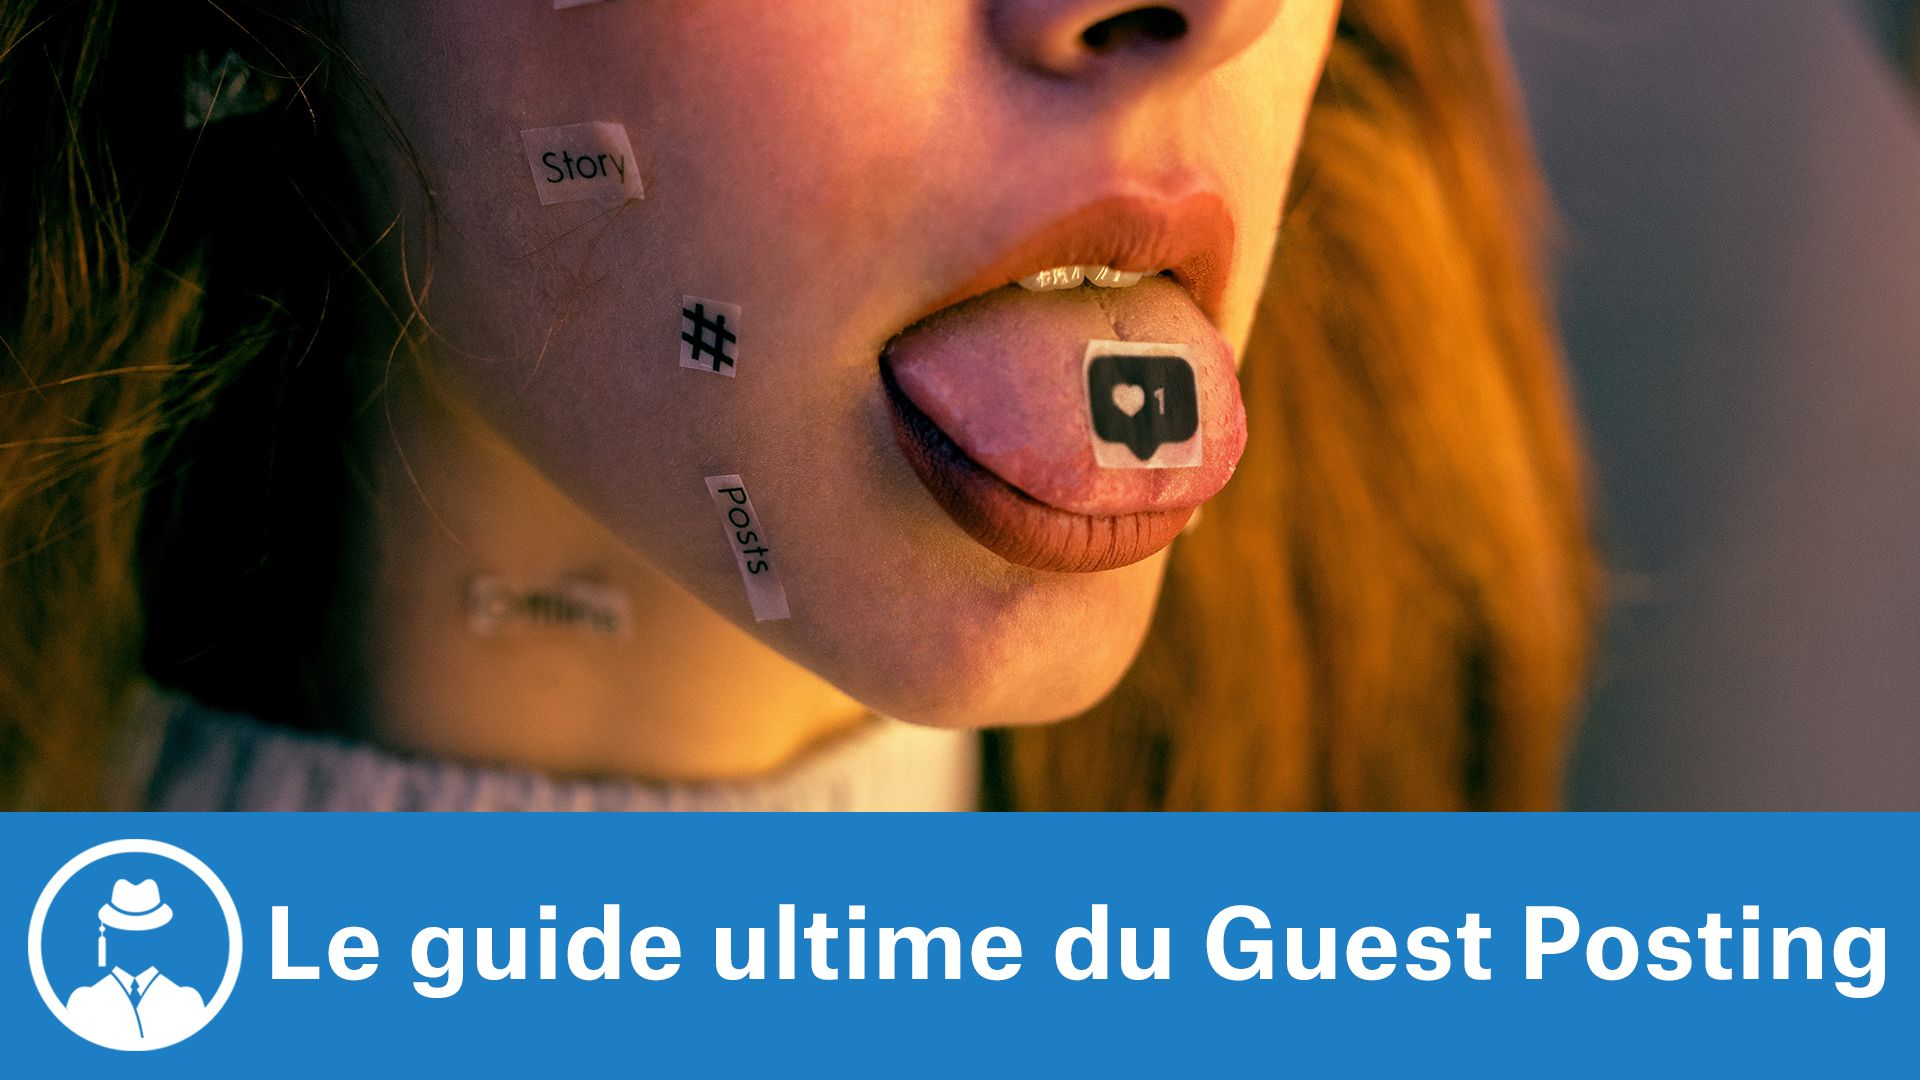 Le guide ultime du guest #GrowthHacking #WebMarketing #FormationGrowthHacking #CentreDeFormationFrance #TunnelAARRR #AARRR #SocialMedia #CommunityManagement #SEO #MarketingDigital #SiteWeb